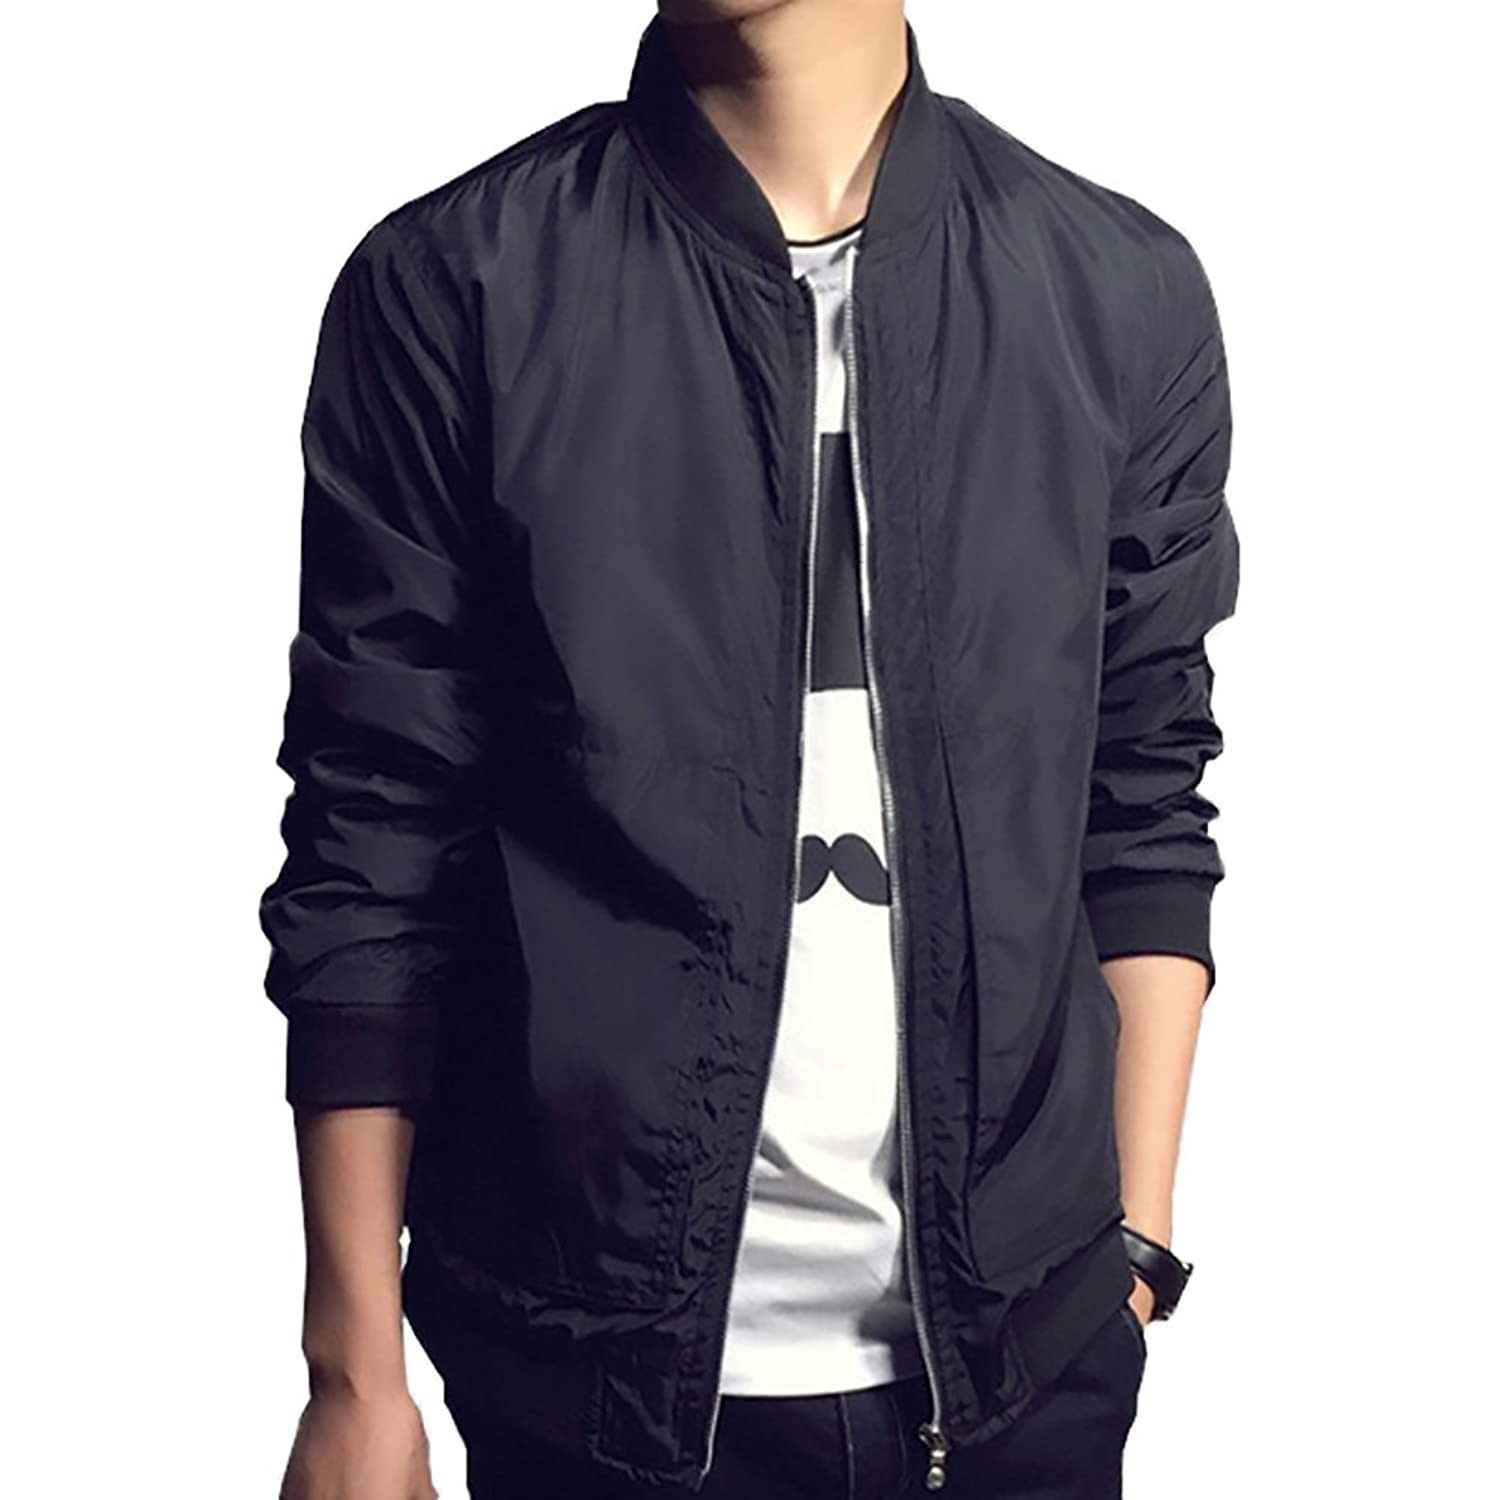 Nantersan Mens Casual Jacket Outdoor Lightweight Bomber Jackets ...